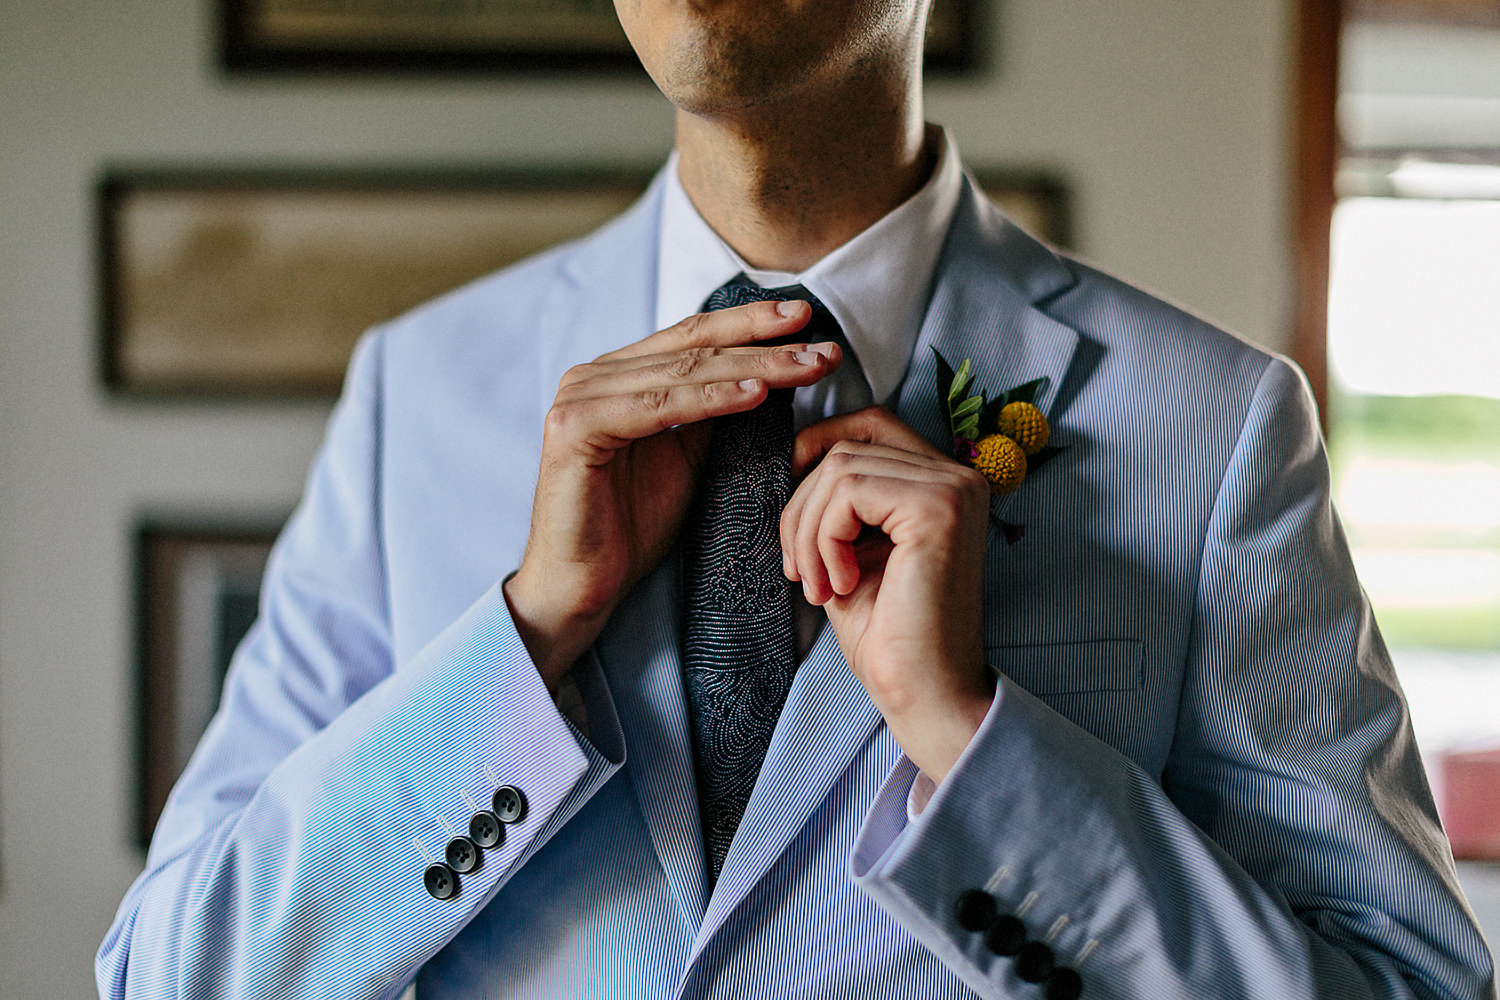 Best-Wedding-Photographers-Toronto-with-documentary-style-photojournalistic-wedding-photographer-editorial-cool-hip-timeless-Intimate-Vintage-Toronto-Island-Cafe-Clubhouse-Wedding-Groom-Candid-Getting-Ready-Fixing-tie-in-reflection.jpg